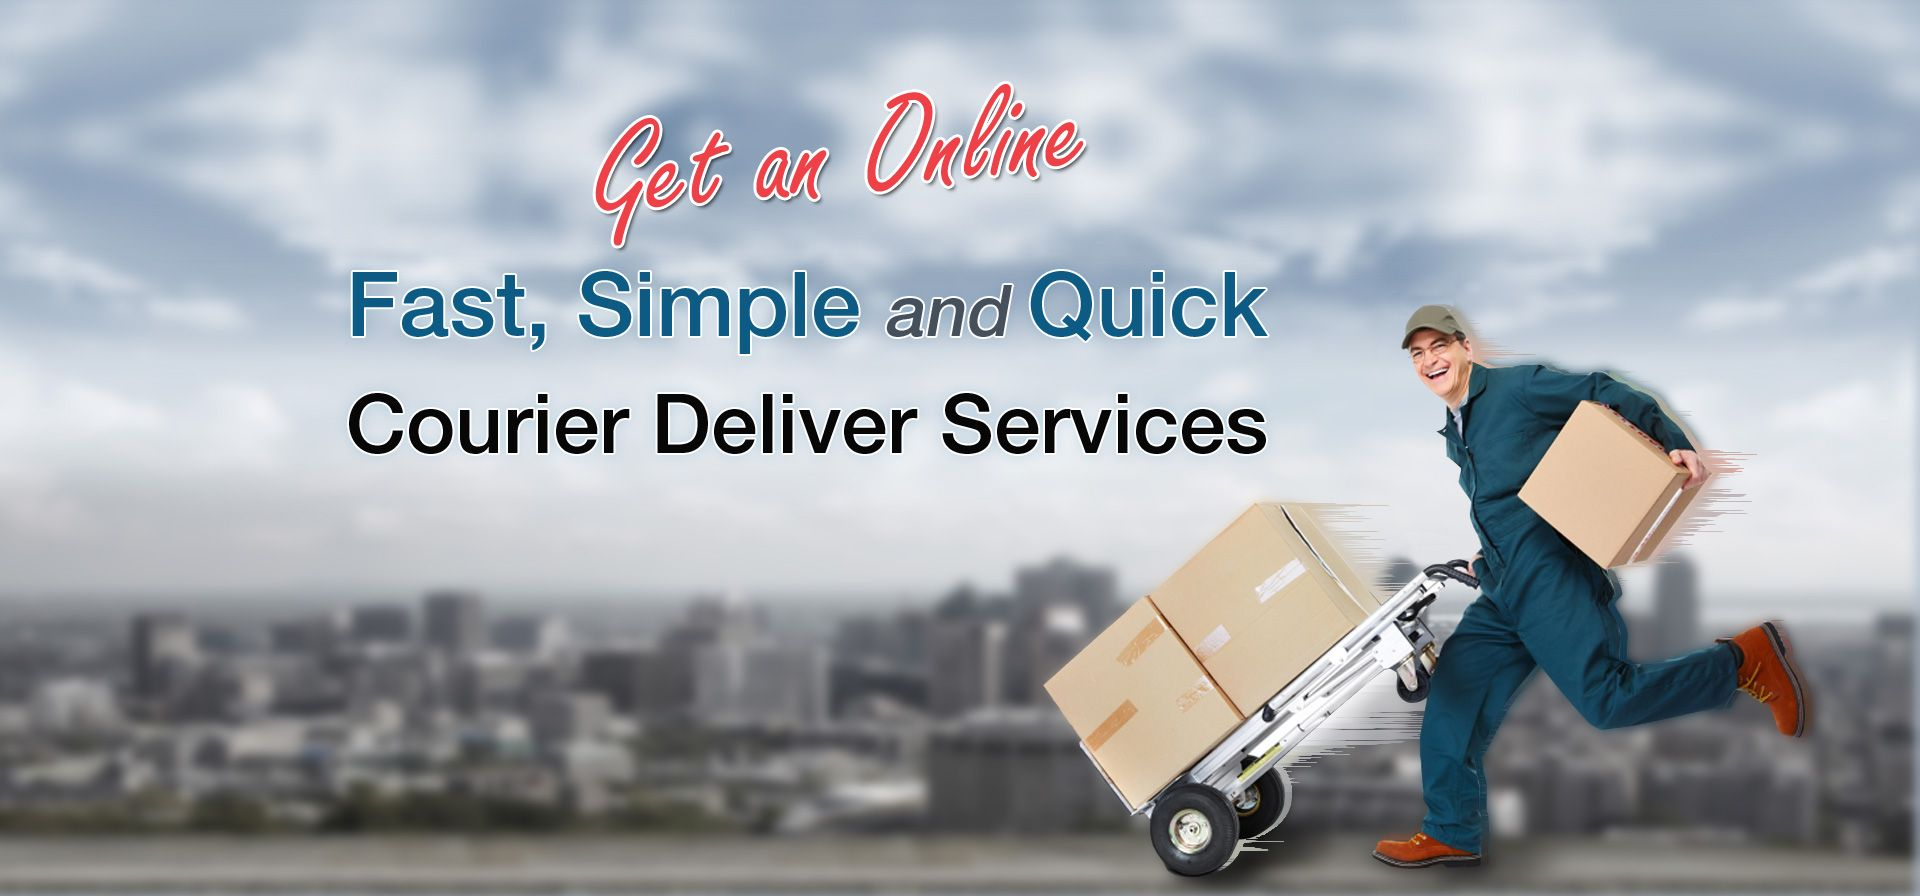 We are professional Courier & Forwarding Company who has